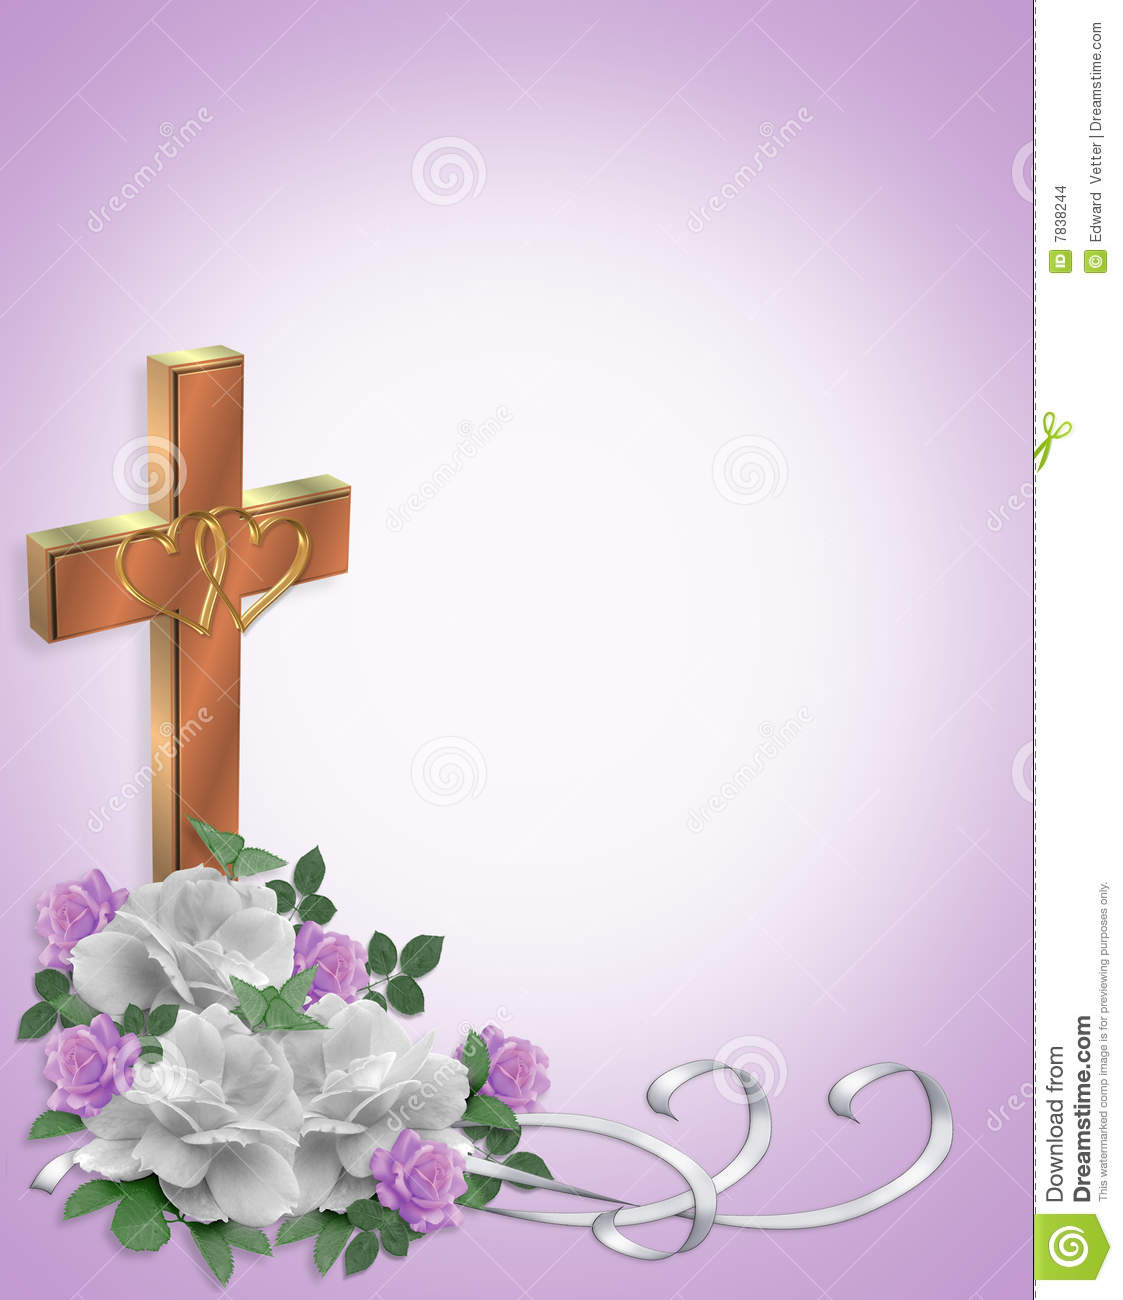 Wedding Invitation Christian Cross Stock Illustration - Illustration ...